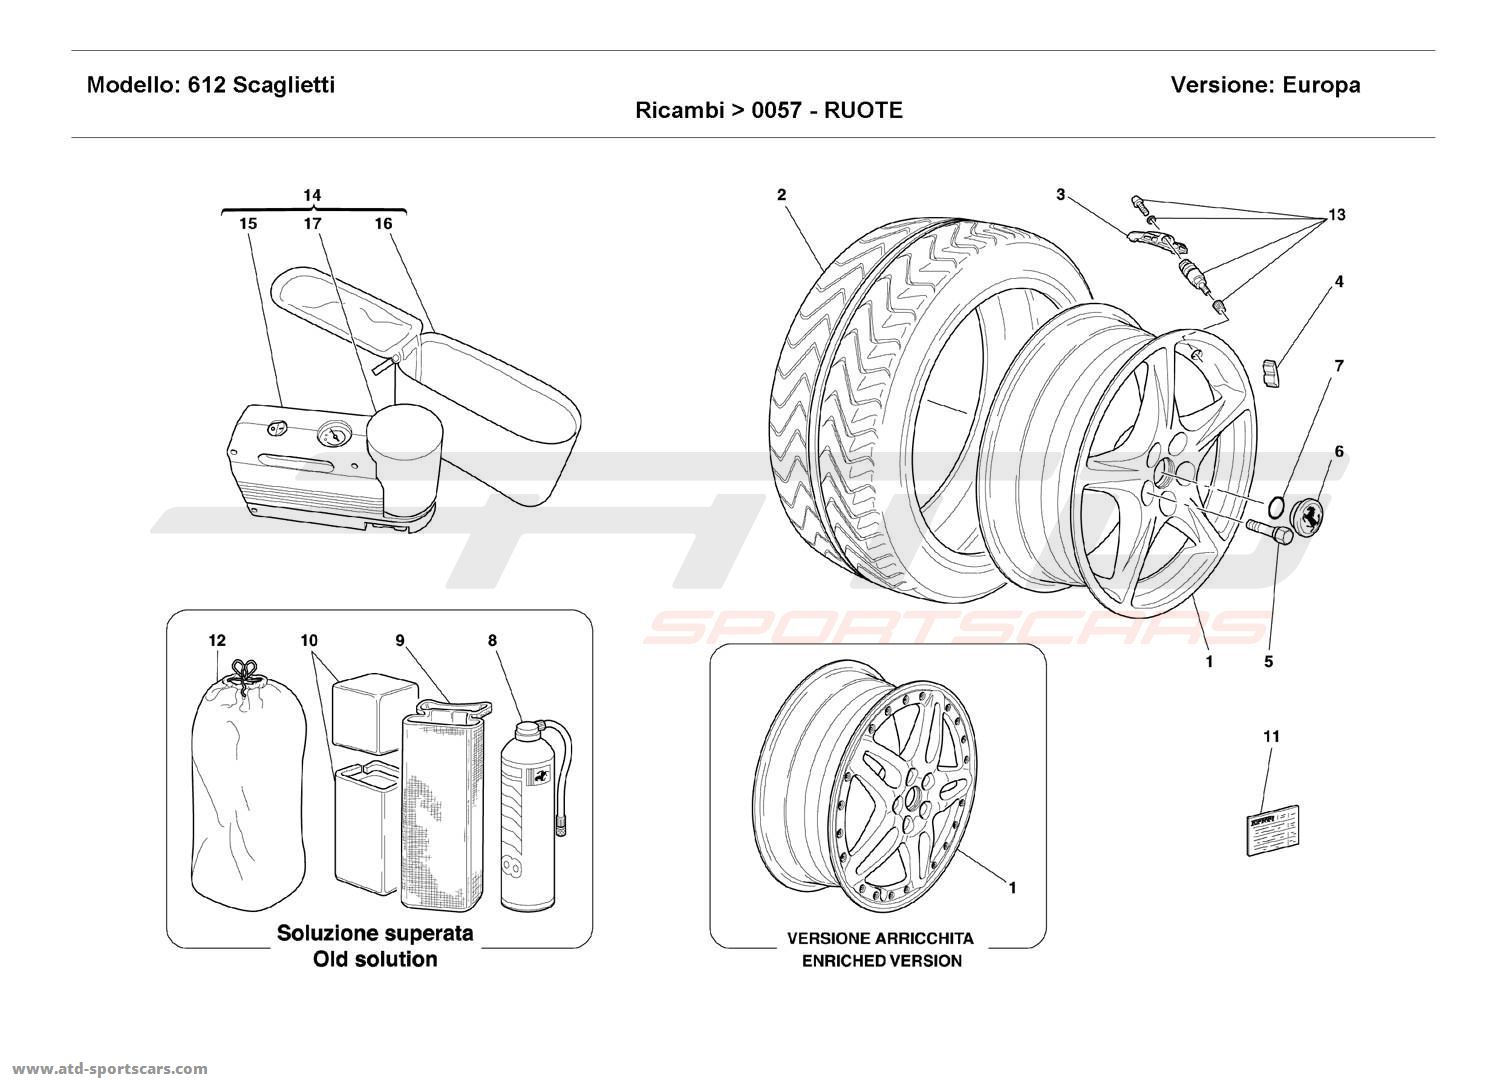 Ferrari 612 Scaglietti WHEELS parts at ATD-Sportscars